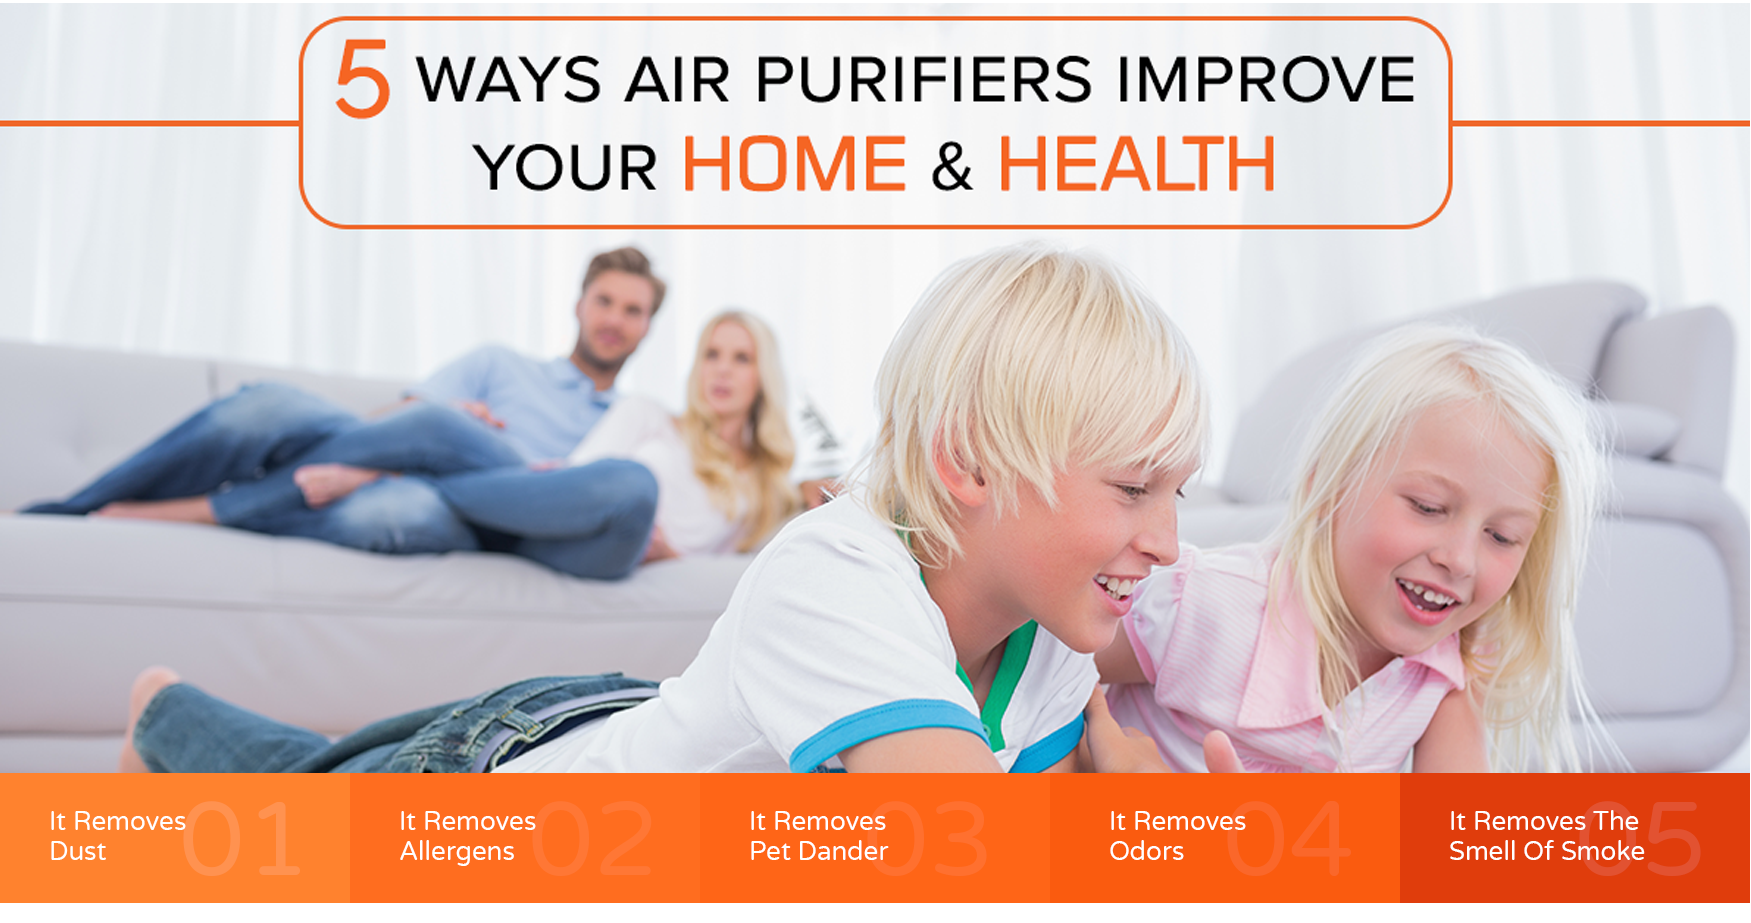 how to improve health with air purifiers